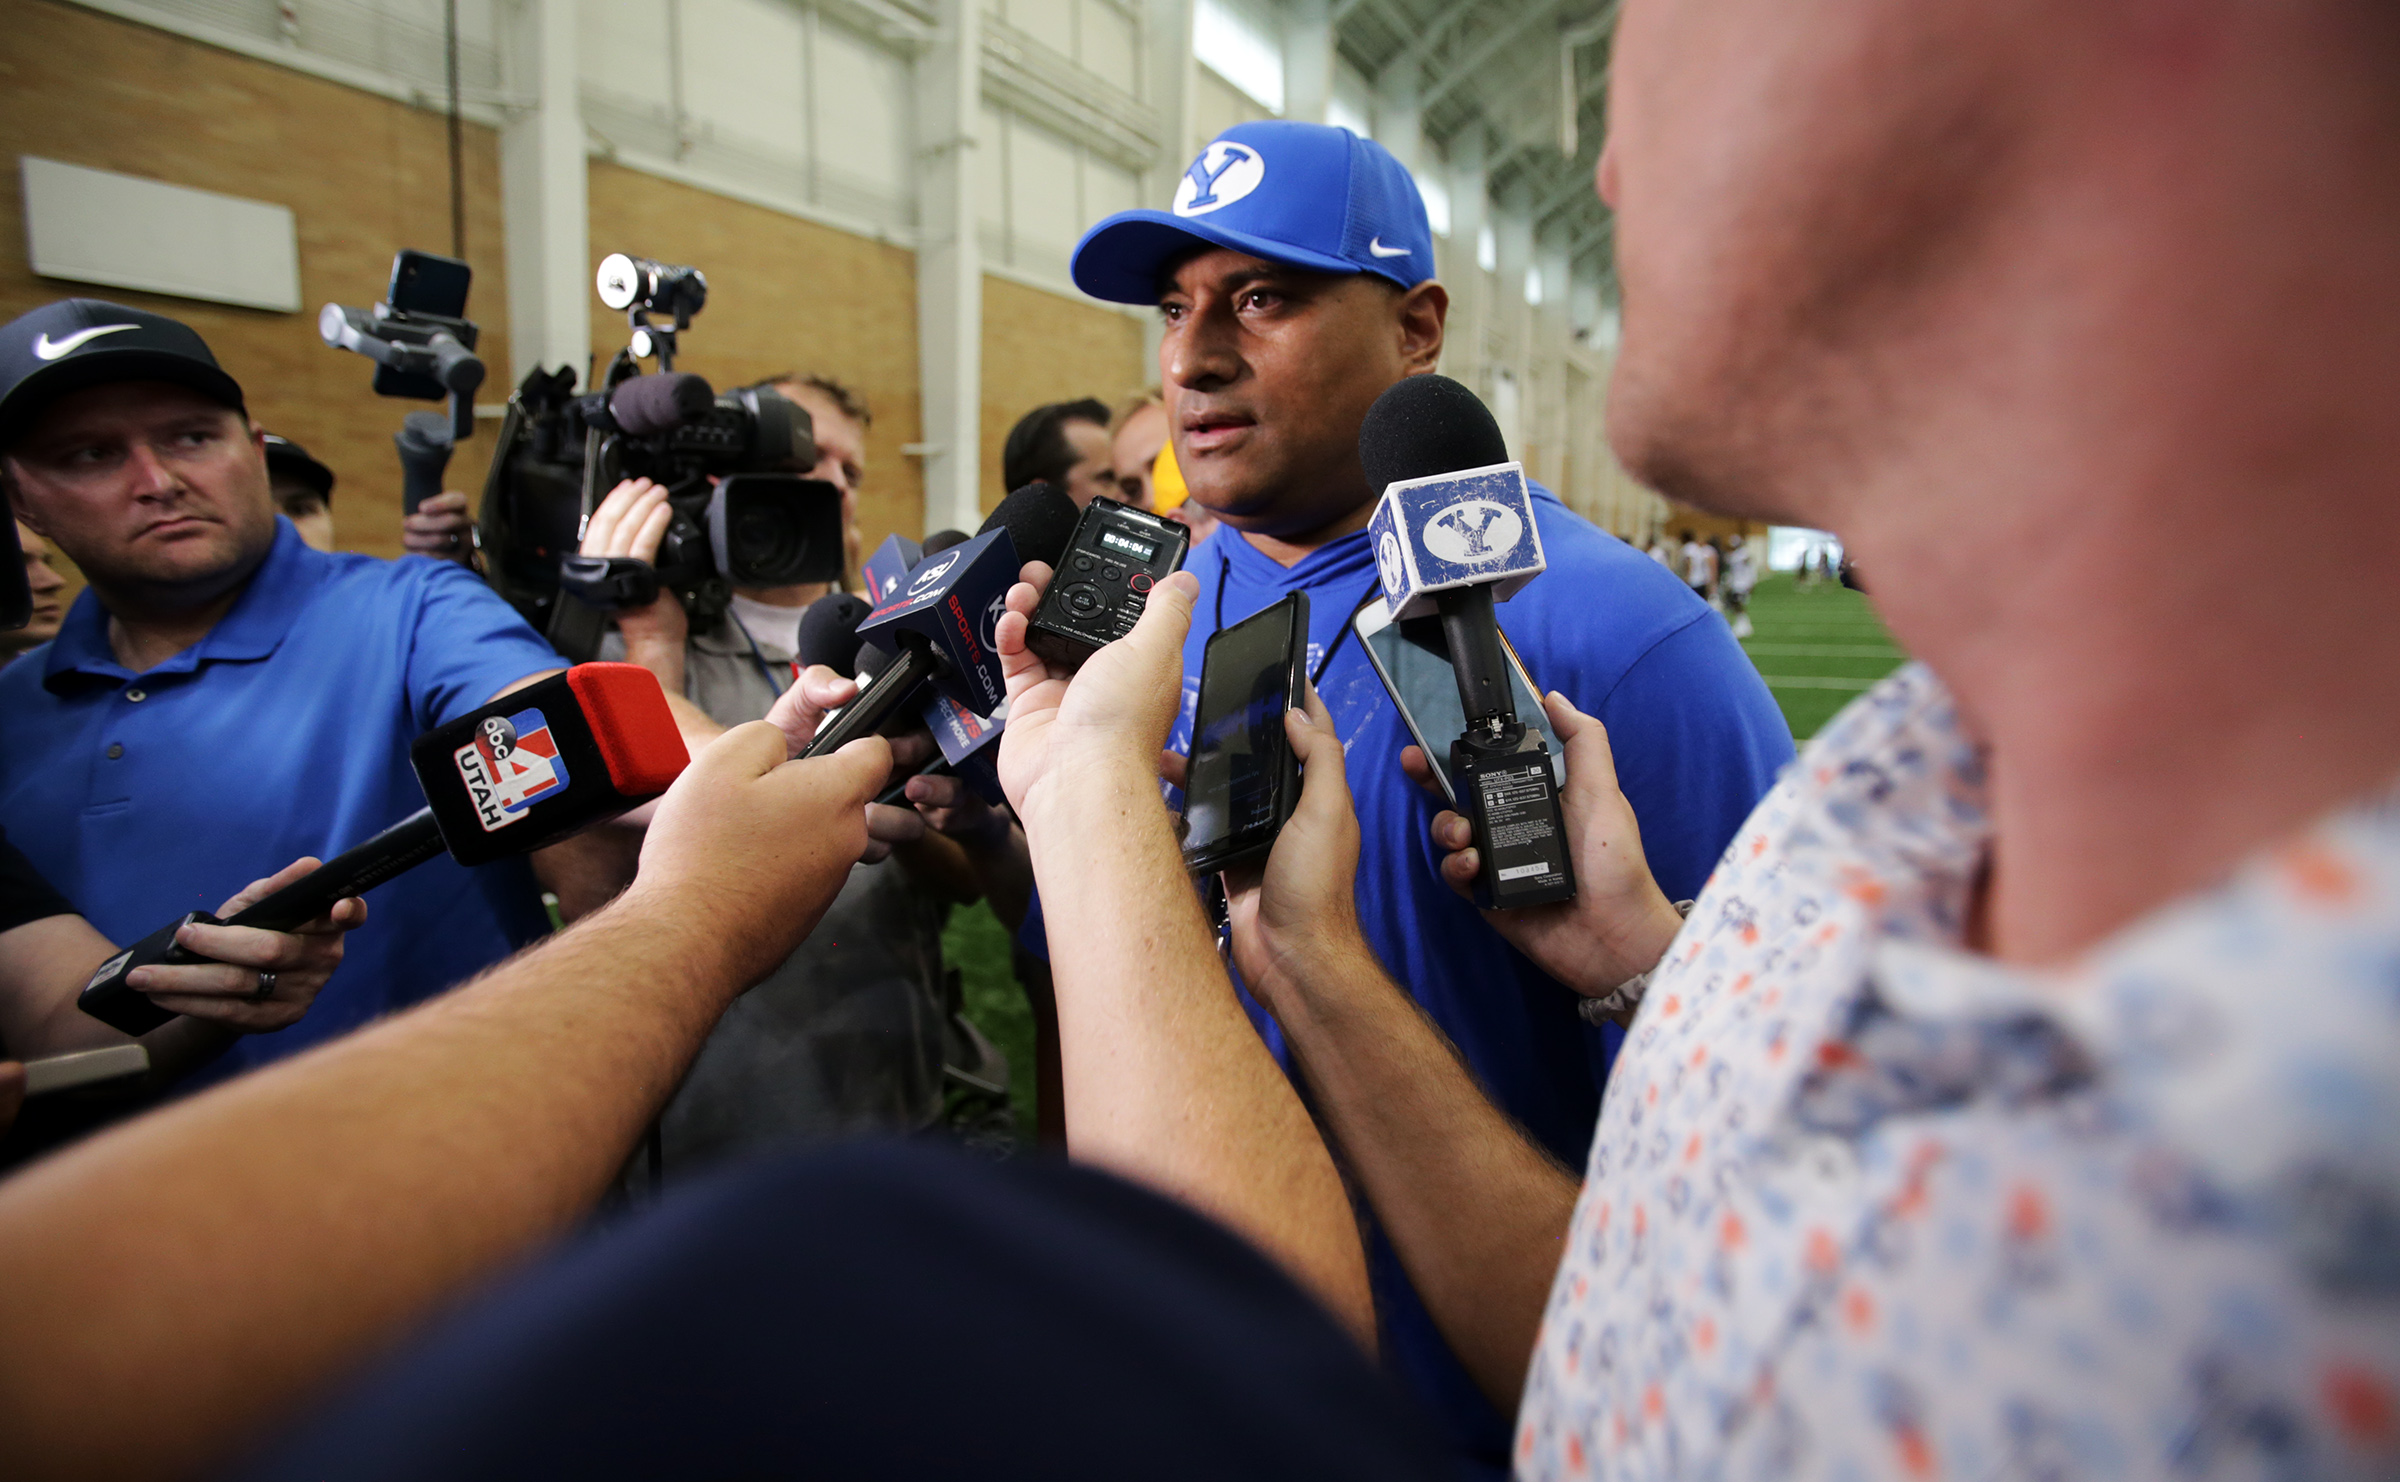 Head football coach Kalani Sitake talks with members of the media after BYU opened football practice at the indoor facility in Provo on Wednesday, July 31, 2019.